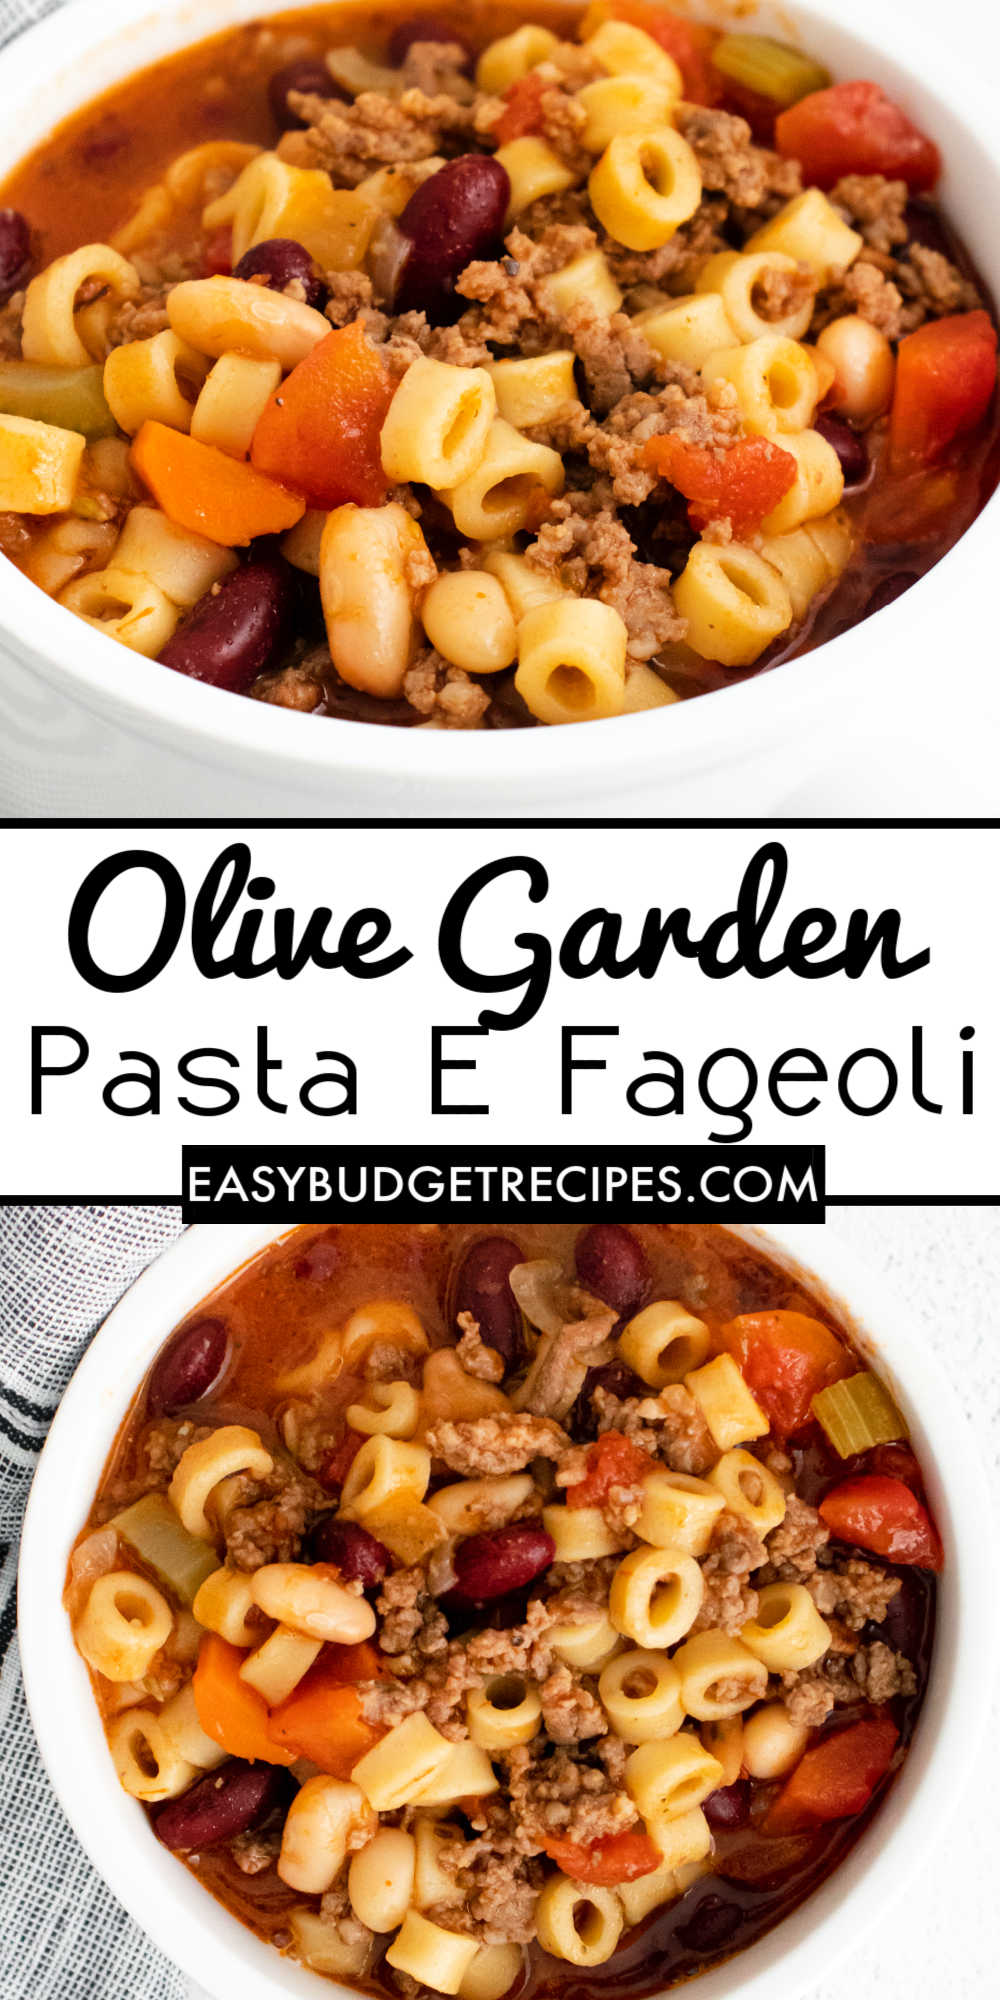 This Instant Pot Olive Garden Pasta e Fagioli Soup is a delicious copycat recipe. It's great for busy weeknights or a cozy winter weekend meal. via @easybudgetrecipes